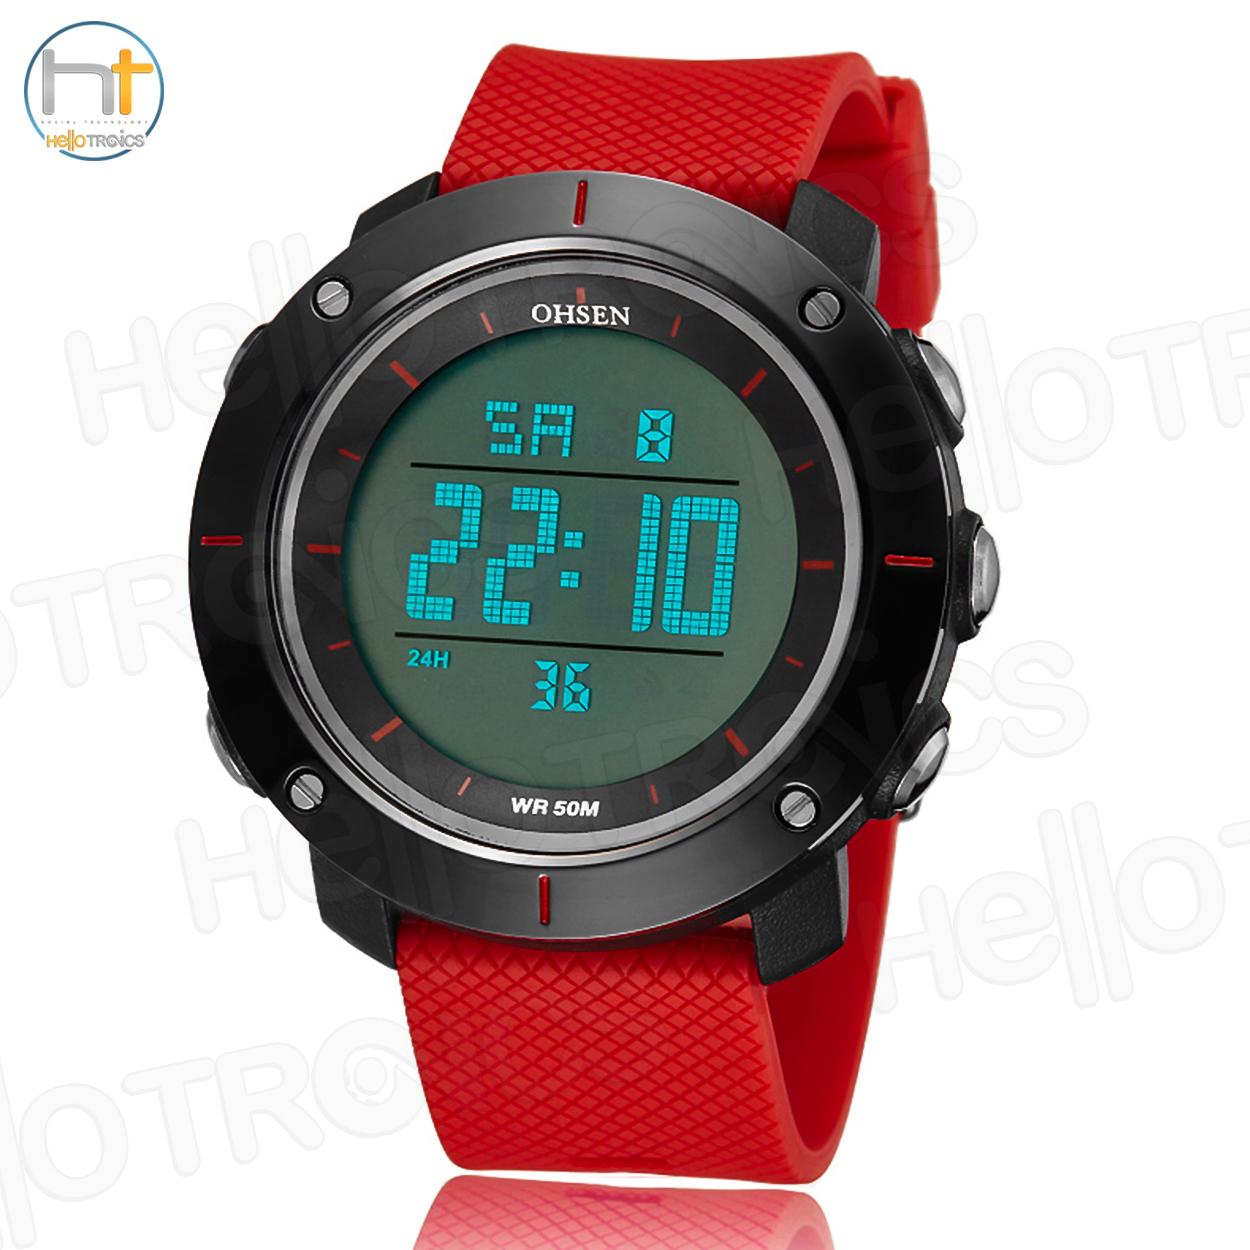 Ohsen 1611 Mens Digital Time Sport Day Date Quartz Silicone Wrist Watch (Red) product preview, discount at cheapest price